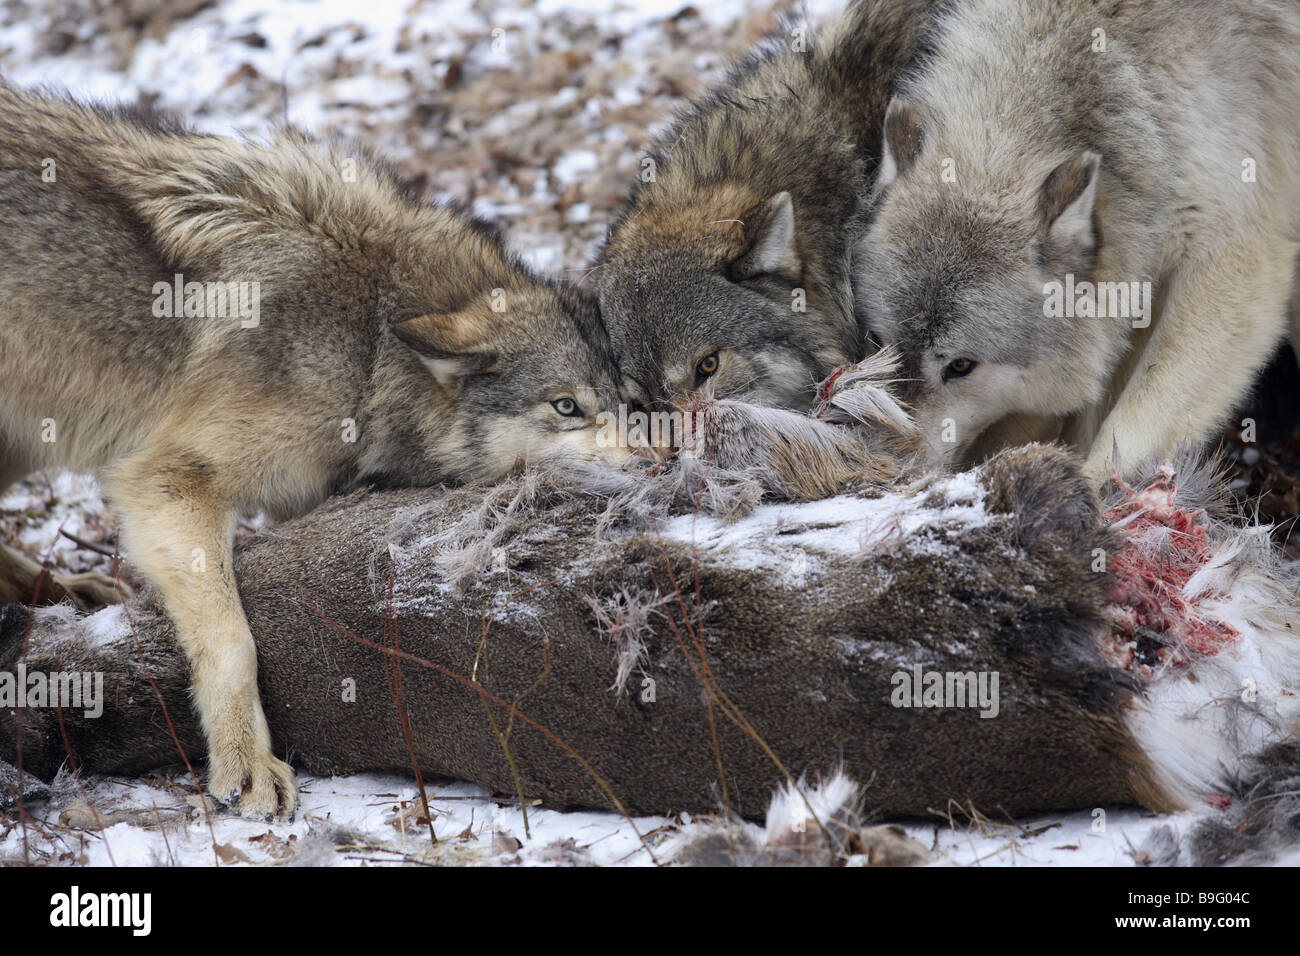 Eastern timber wolves Canis lupus lycaon loot eating Bites loot loot-animal Canis lupus Canis lupus lycaon detail Stock Photo